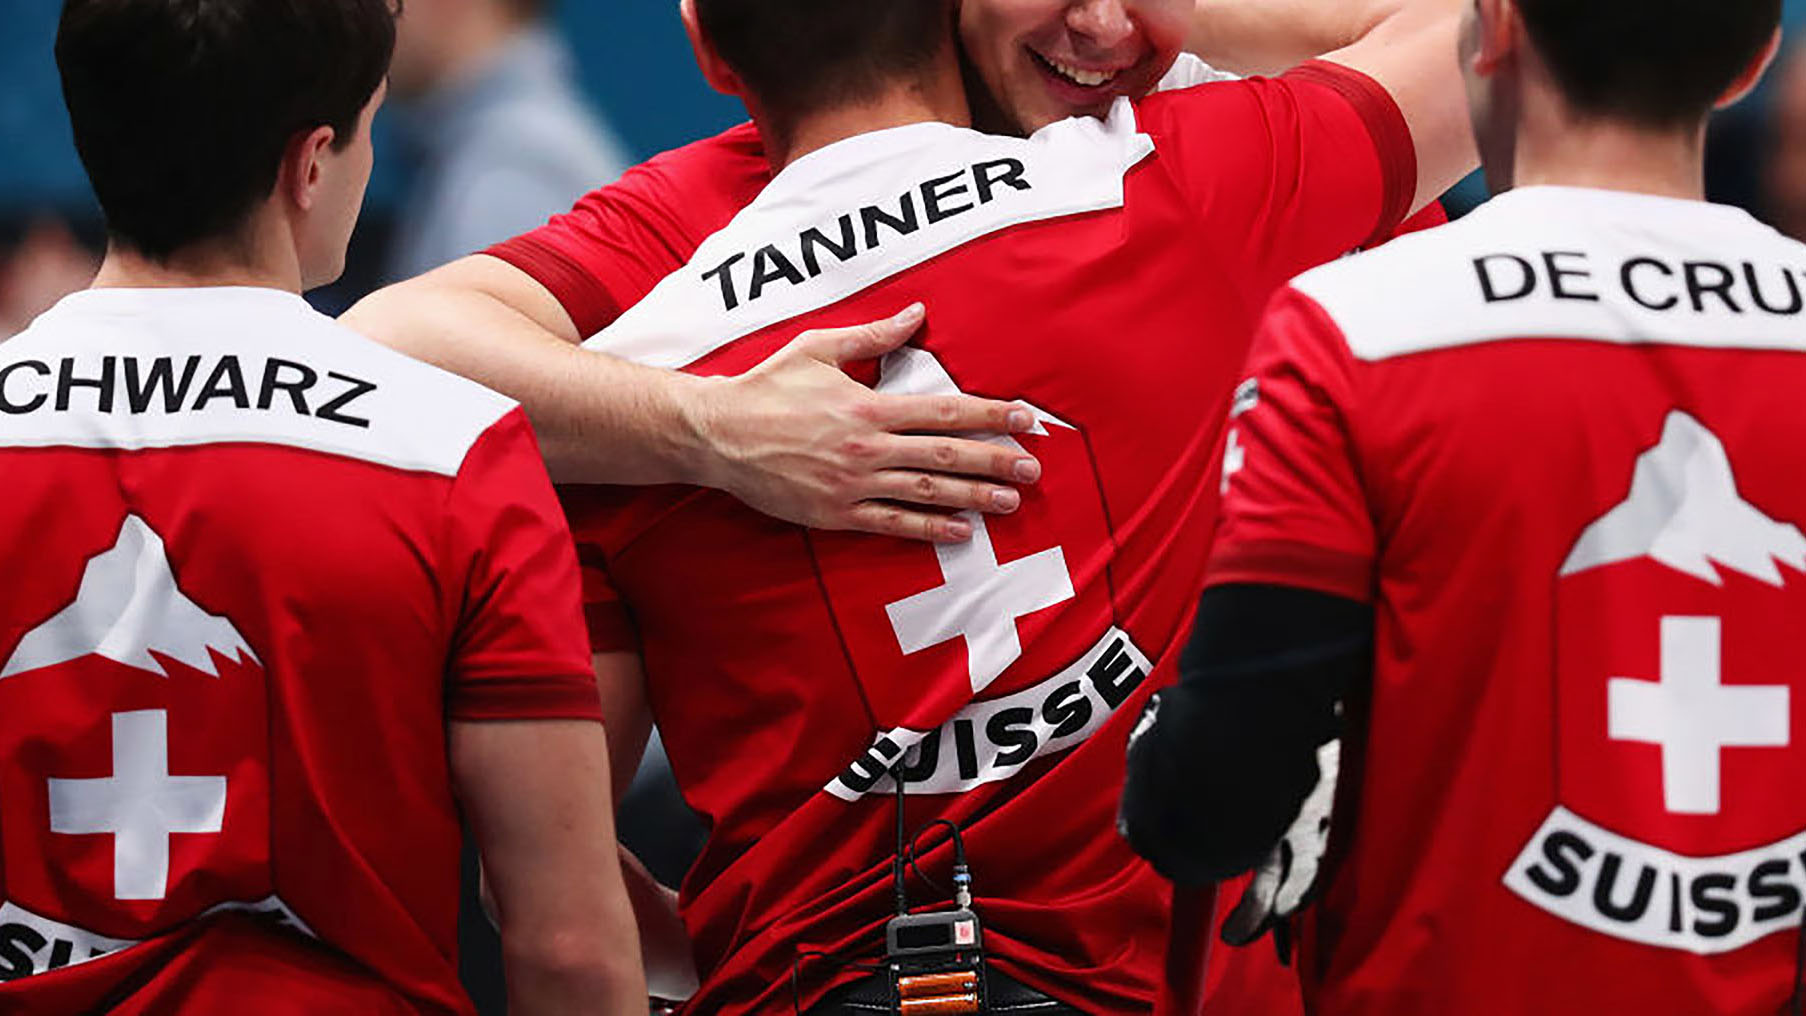 Swiss Olympic Curling Team